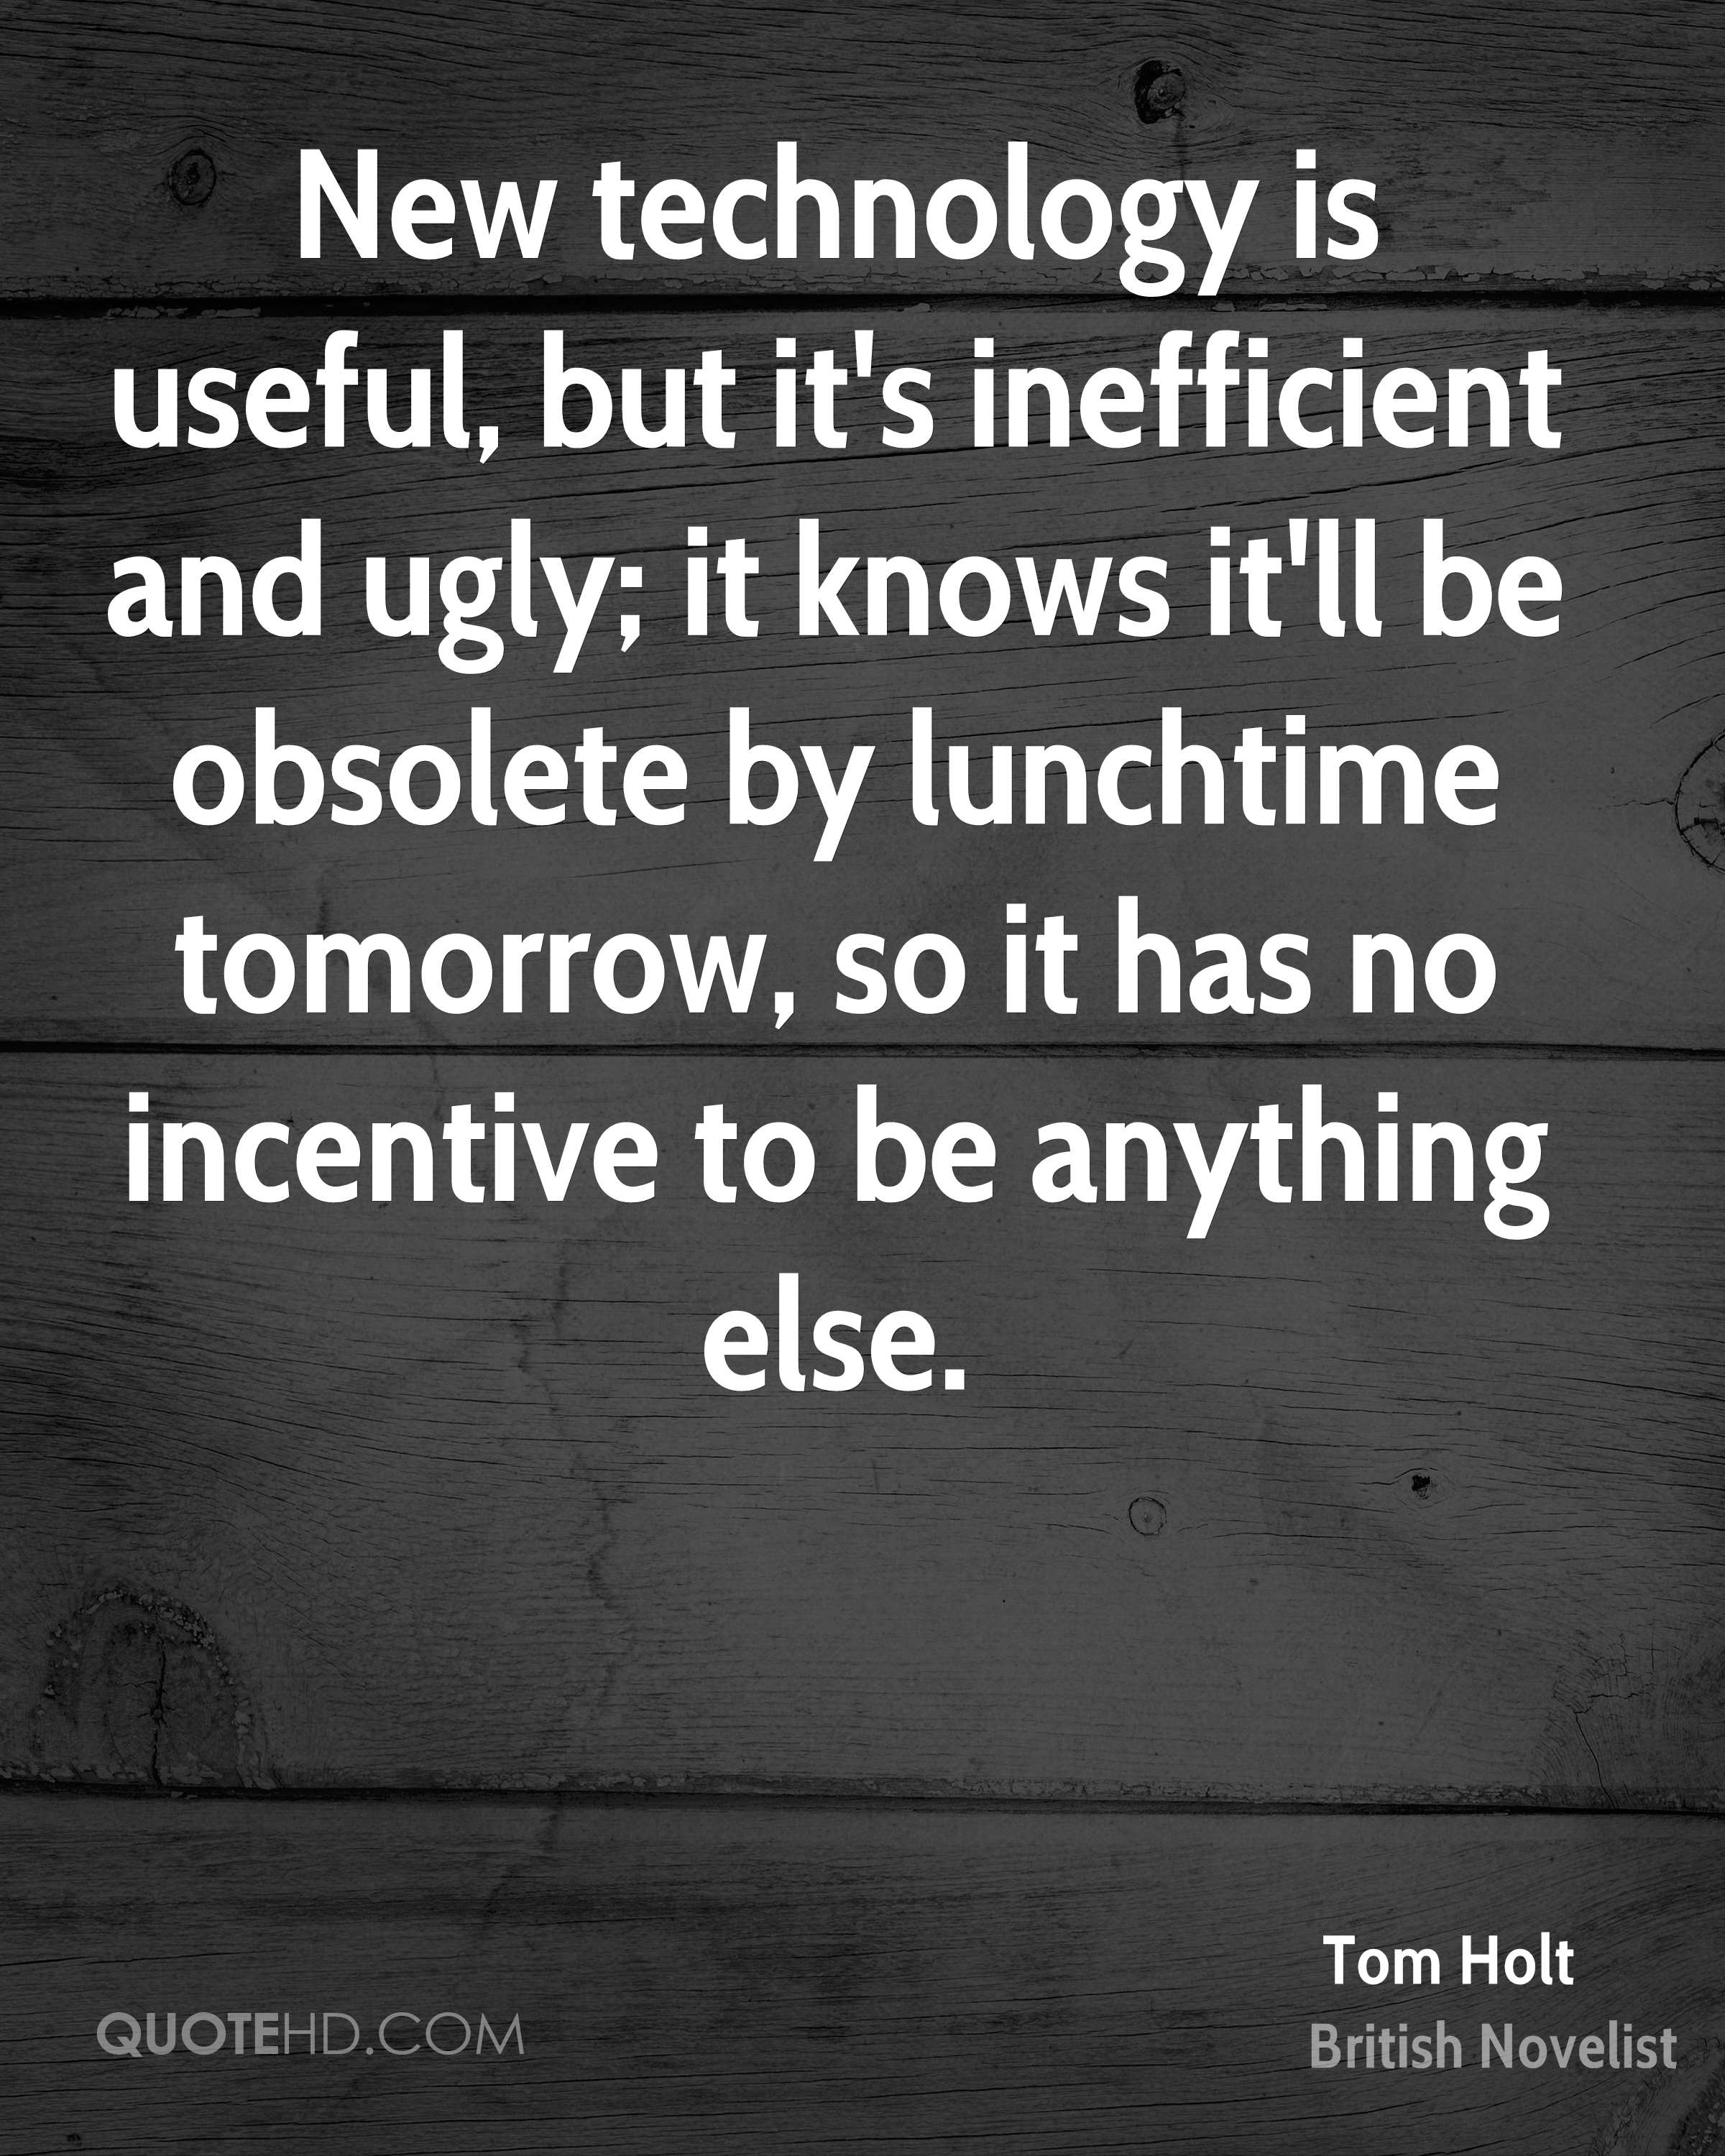 New technology is useful, but it's inefficient and ugly; it knows it'll be obsolete by lunchtime tomorrow, so it has no incentive to be anything else.